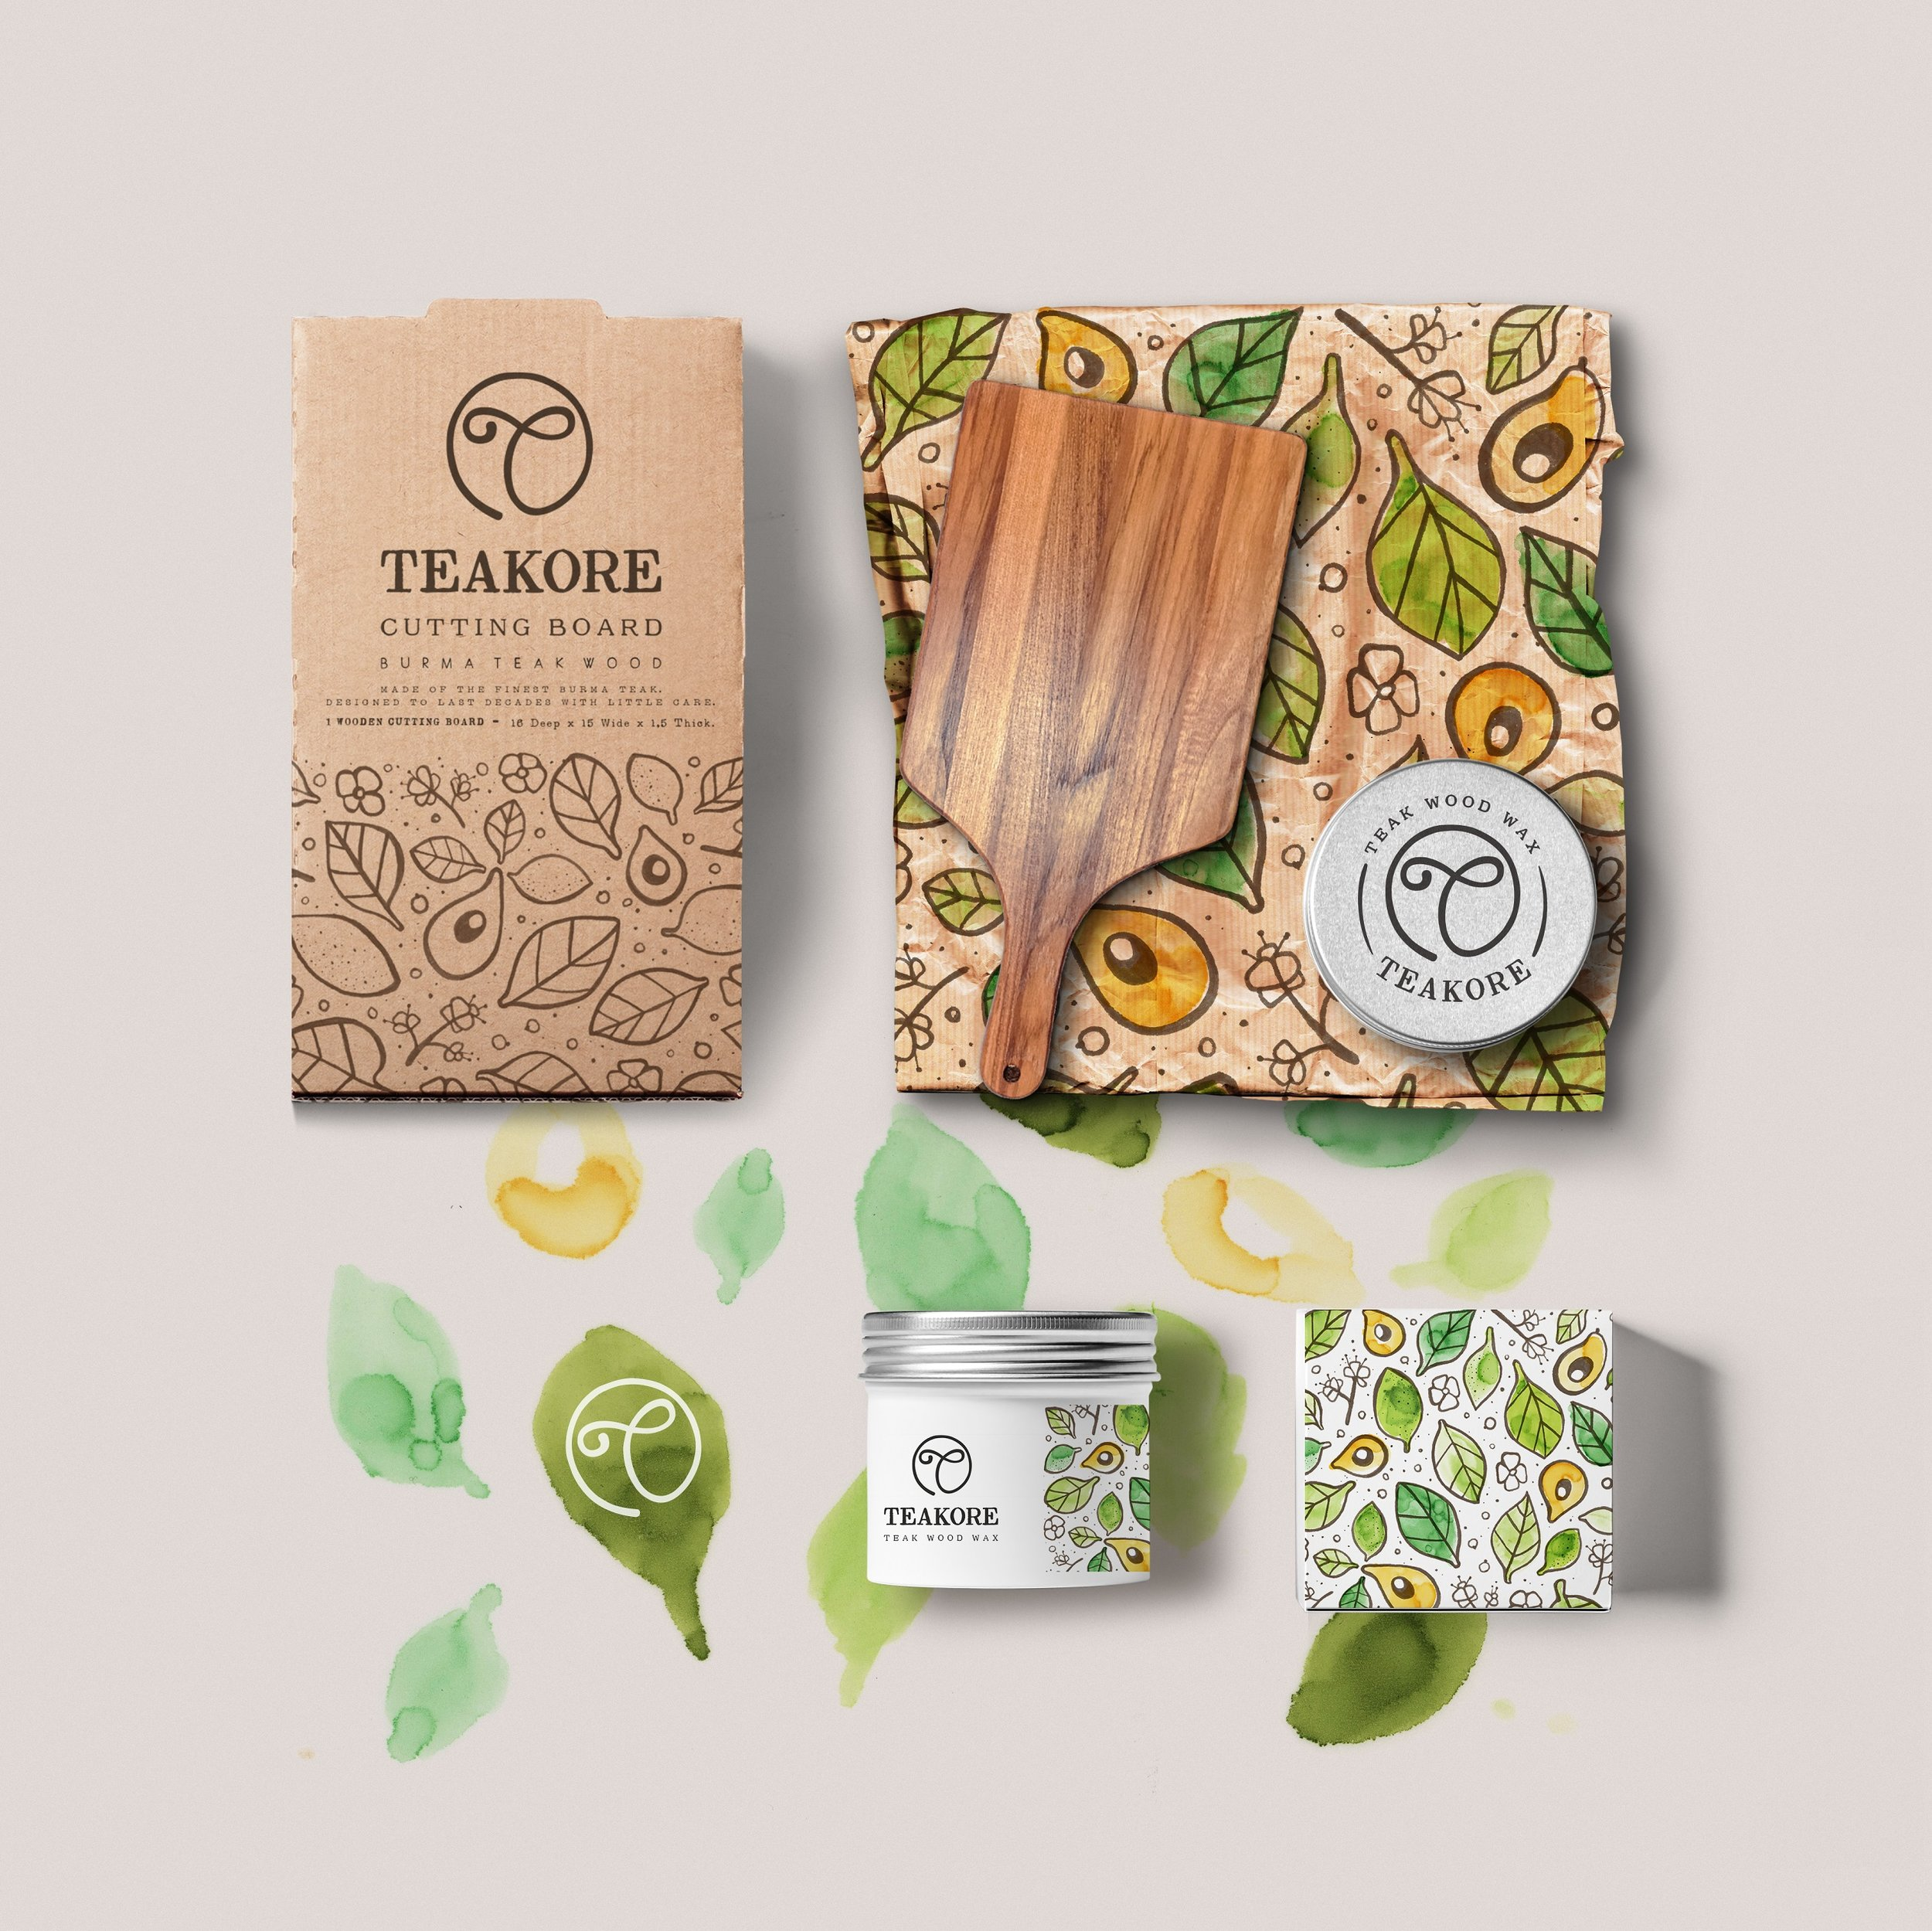 Brand Identity Pack by Martis Lupus for Teakore